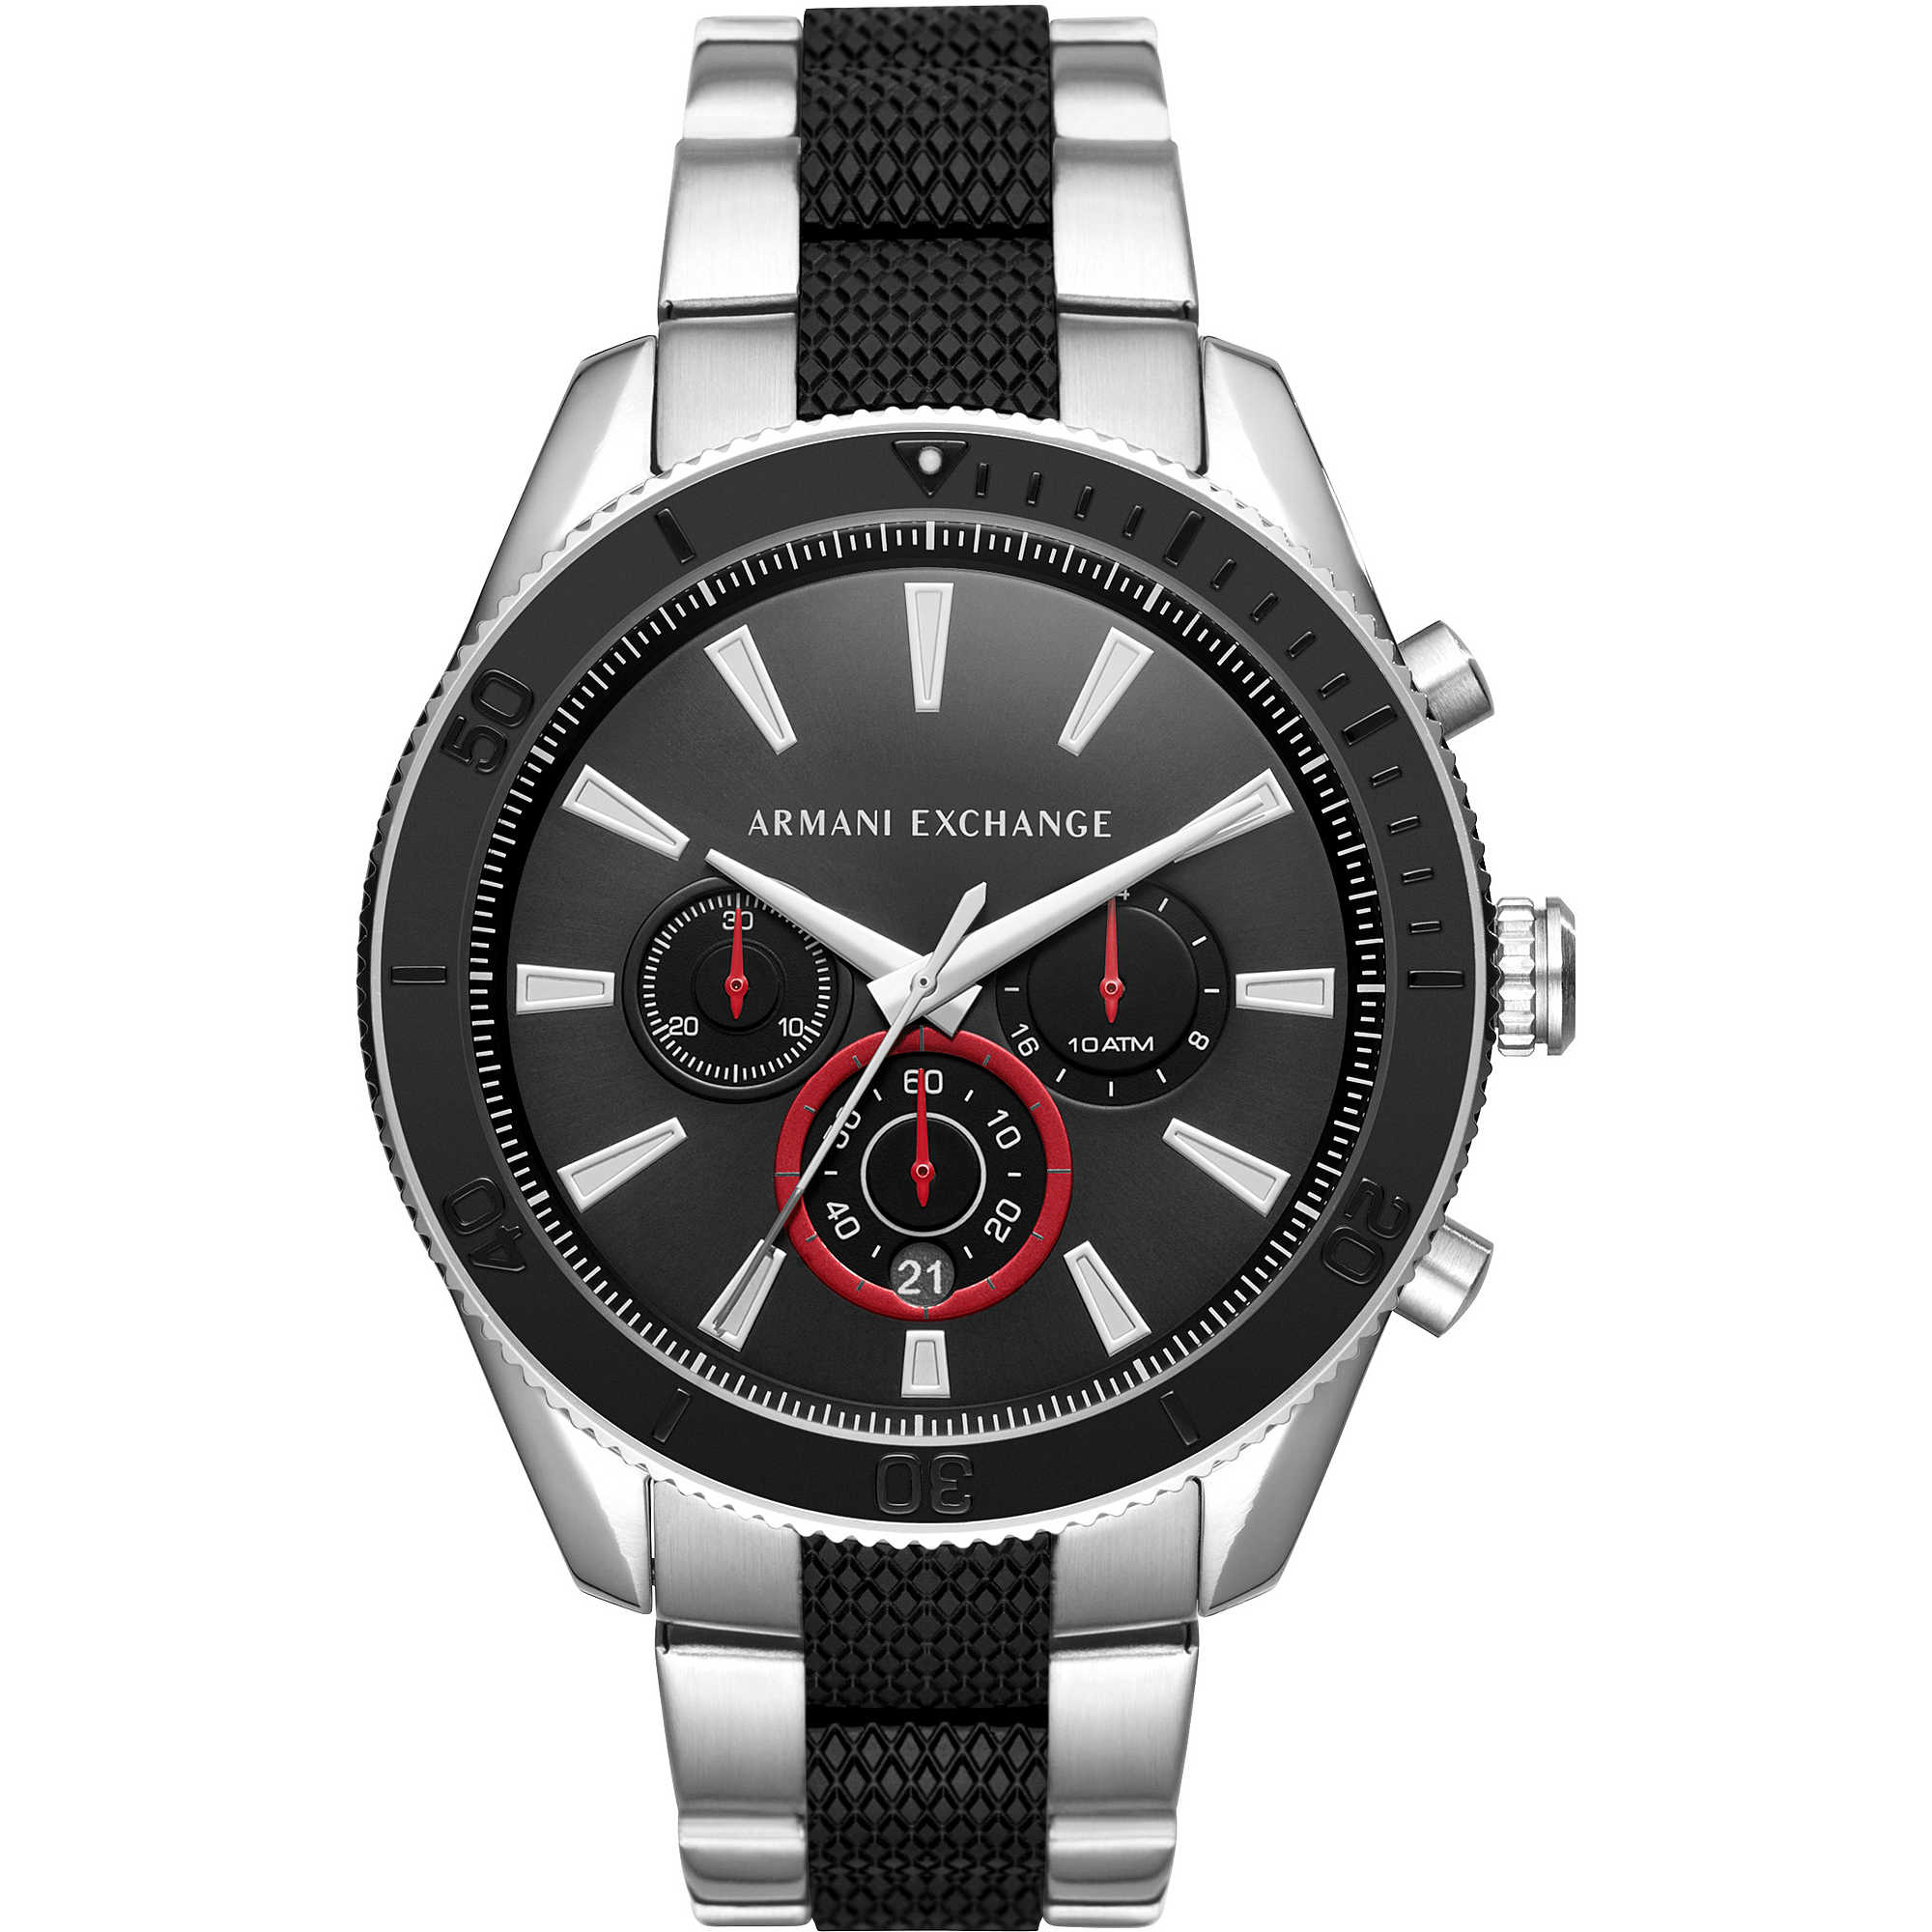 4f2a5372be7d watch chronograph man Armani Exchange Enzo AX1813 chronographs ...